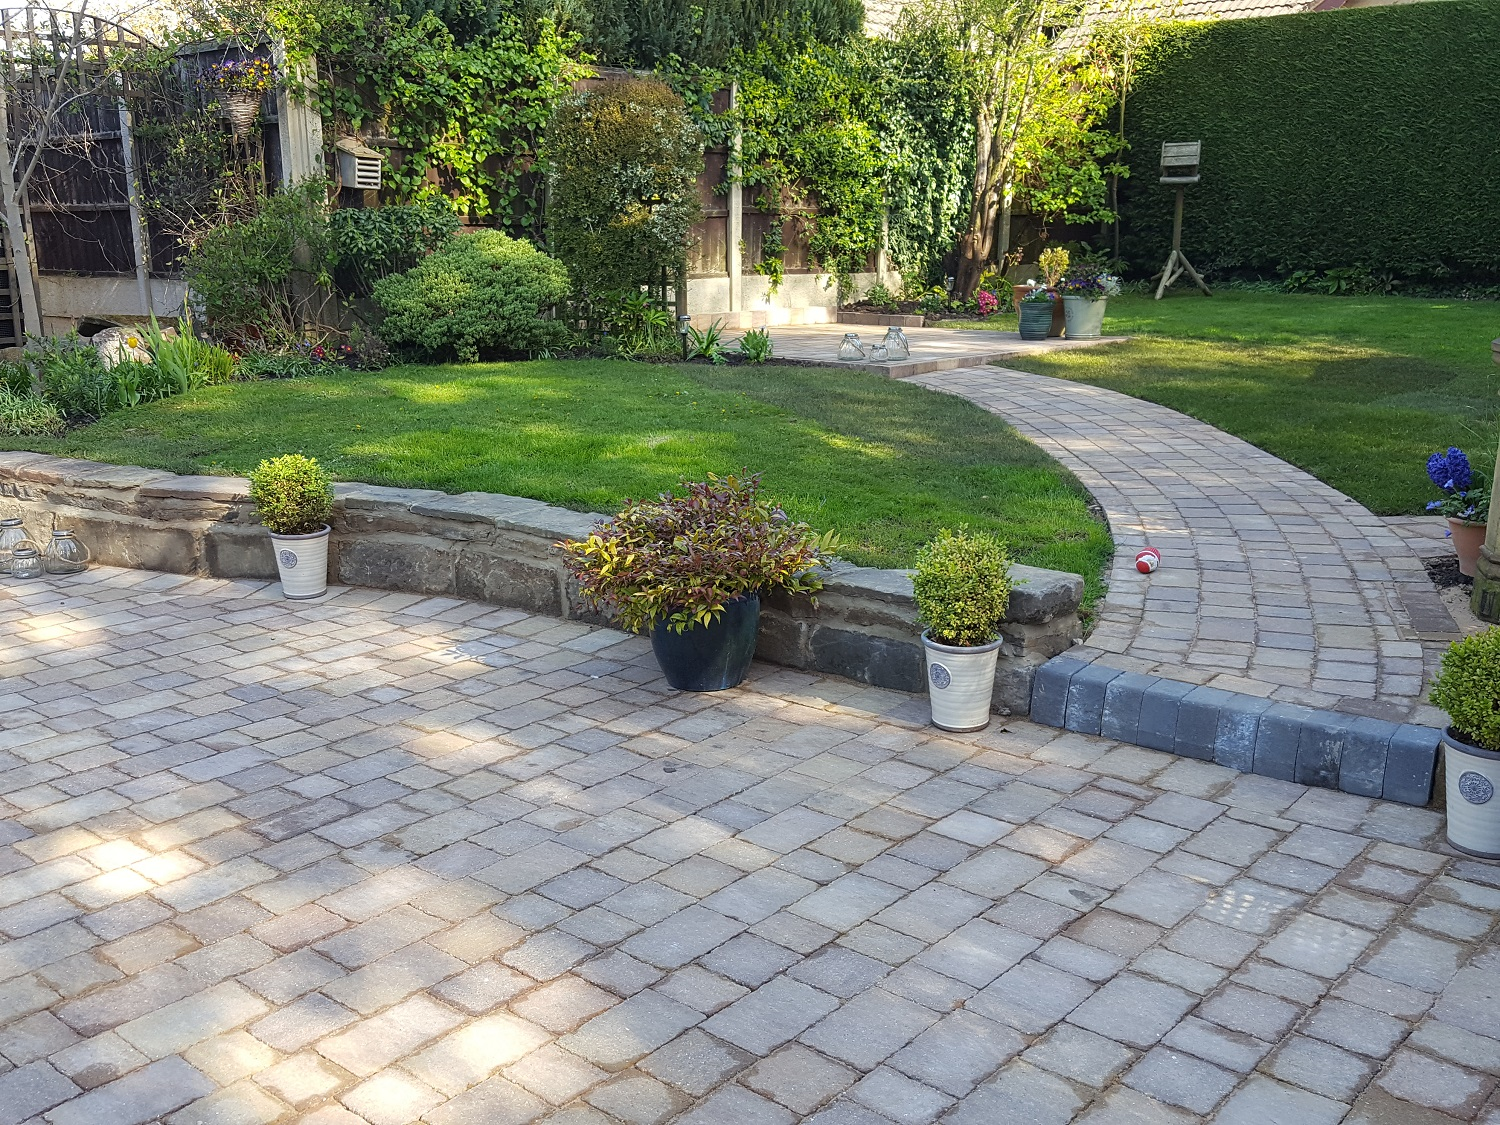 C3 MarshallsTegula Harvest Block Paving Driveway at Brookside in Chesterfield